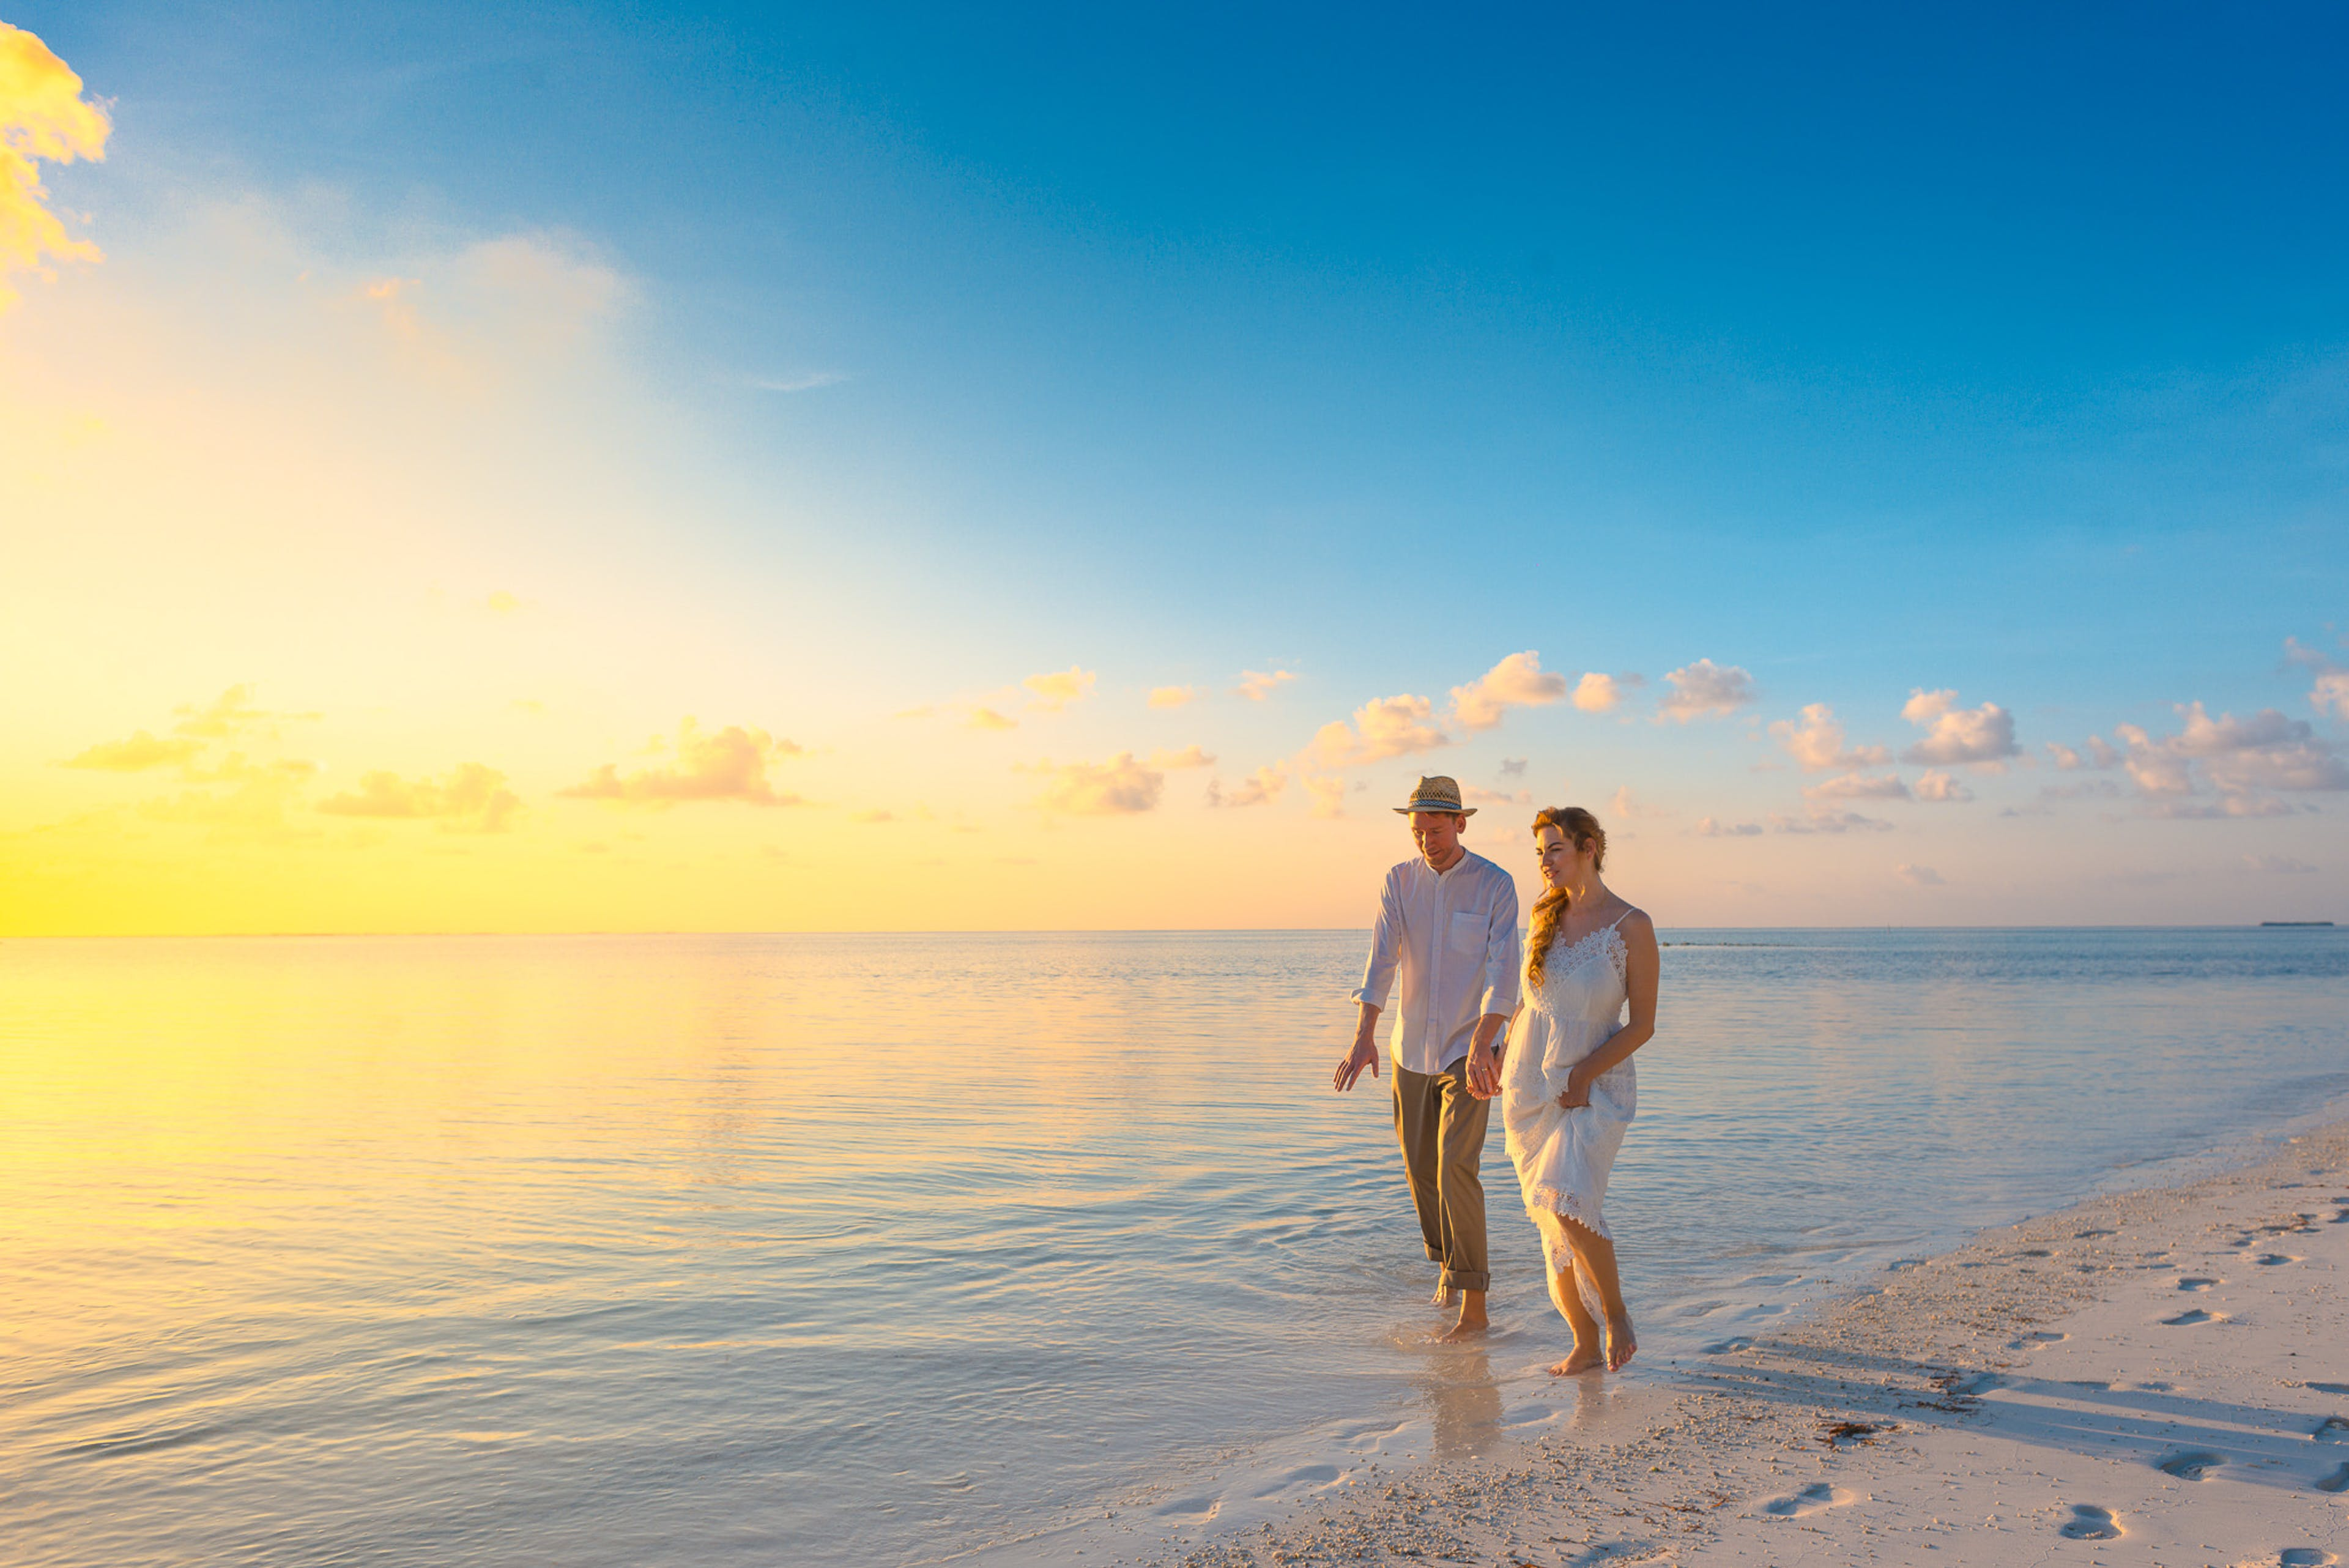 Couple Walking on Seashore Wearing White Tops during Sunset